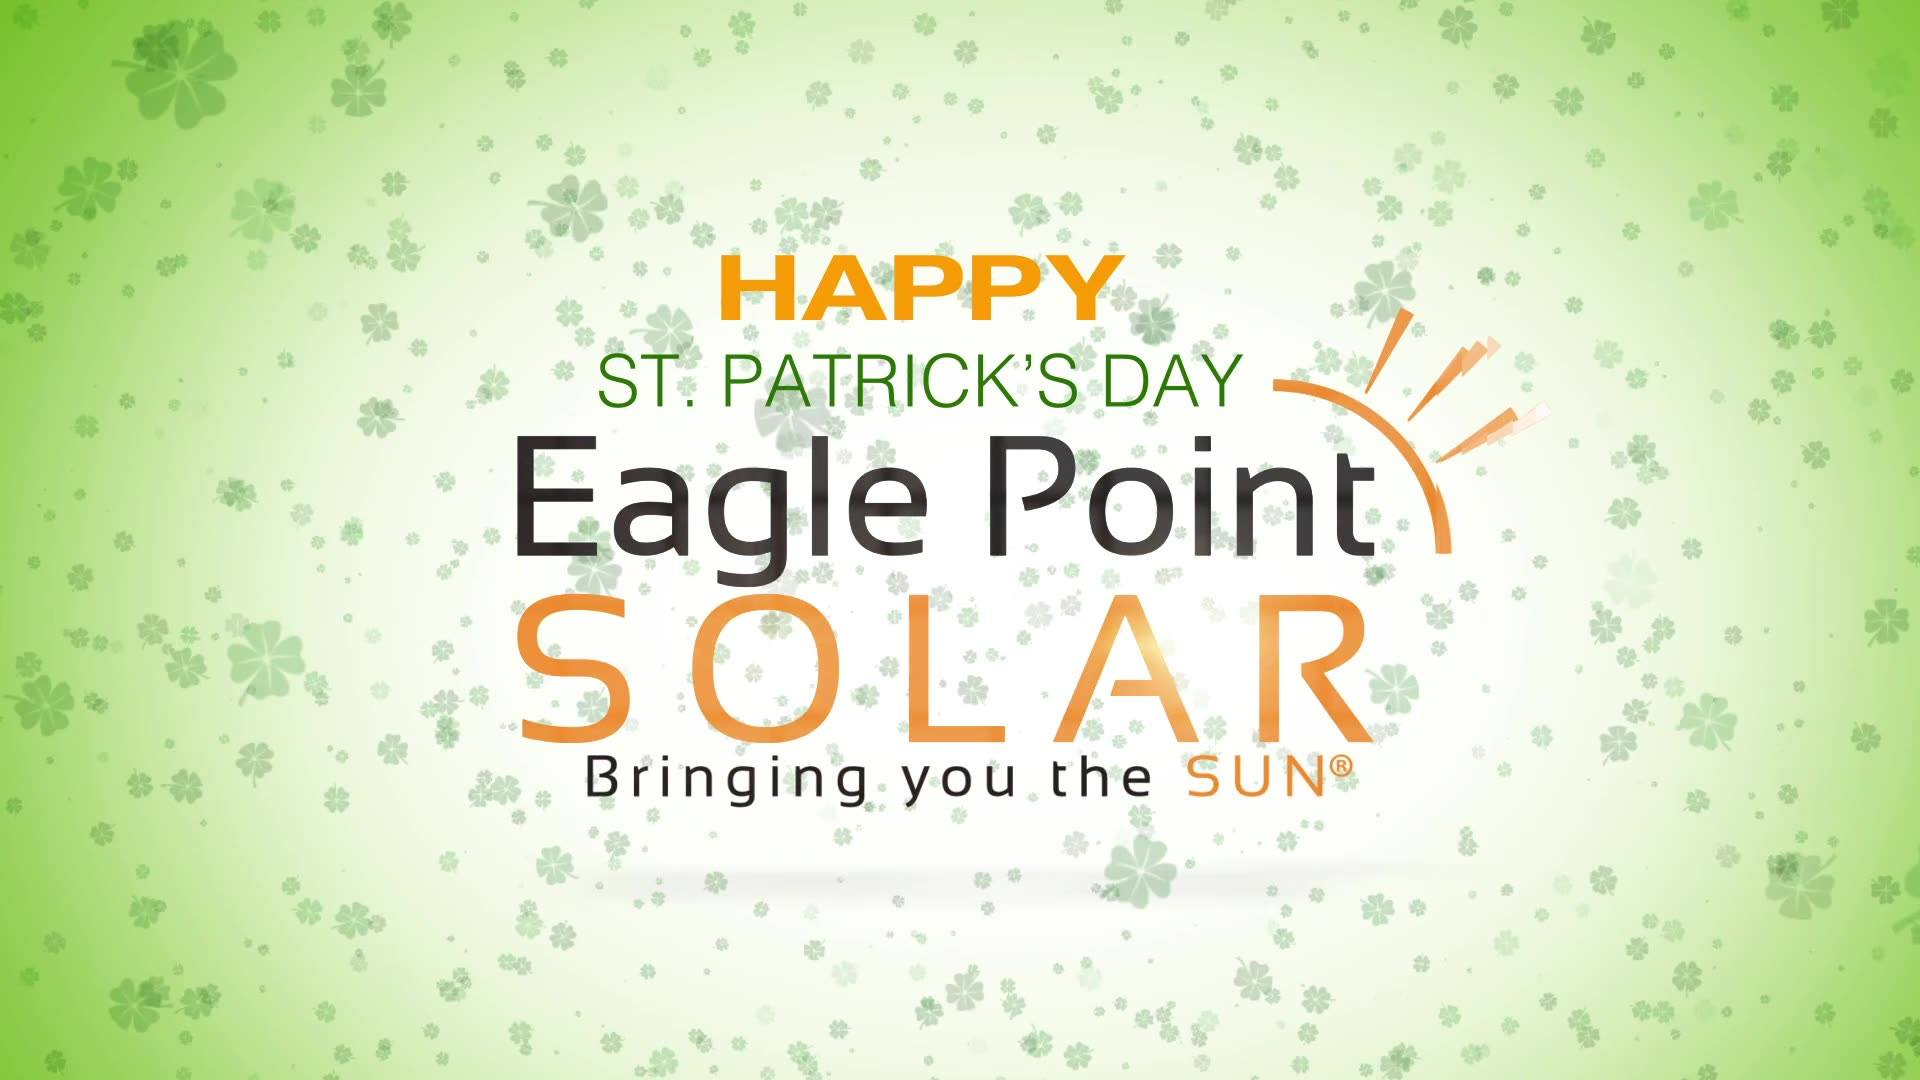 Graphic for St. Patrick's day with Eagle Point Solar